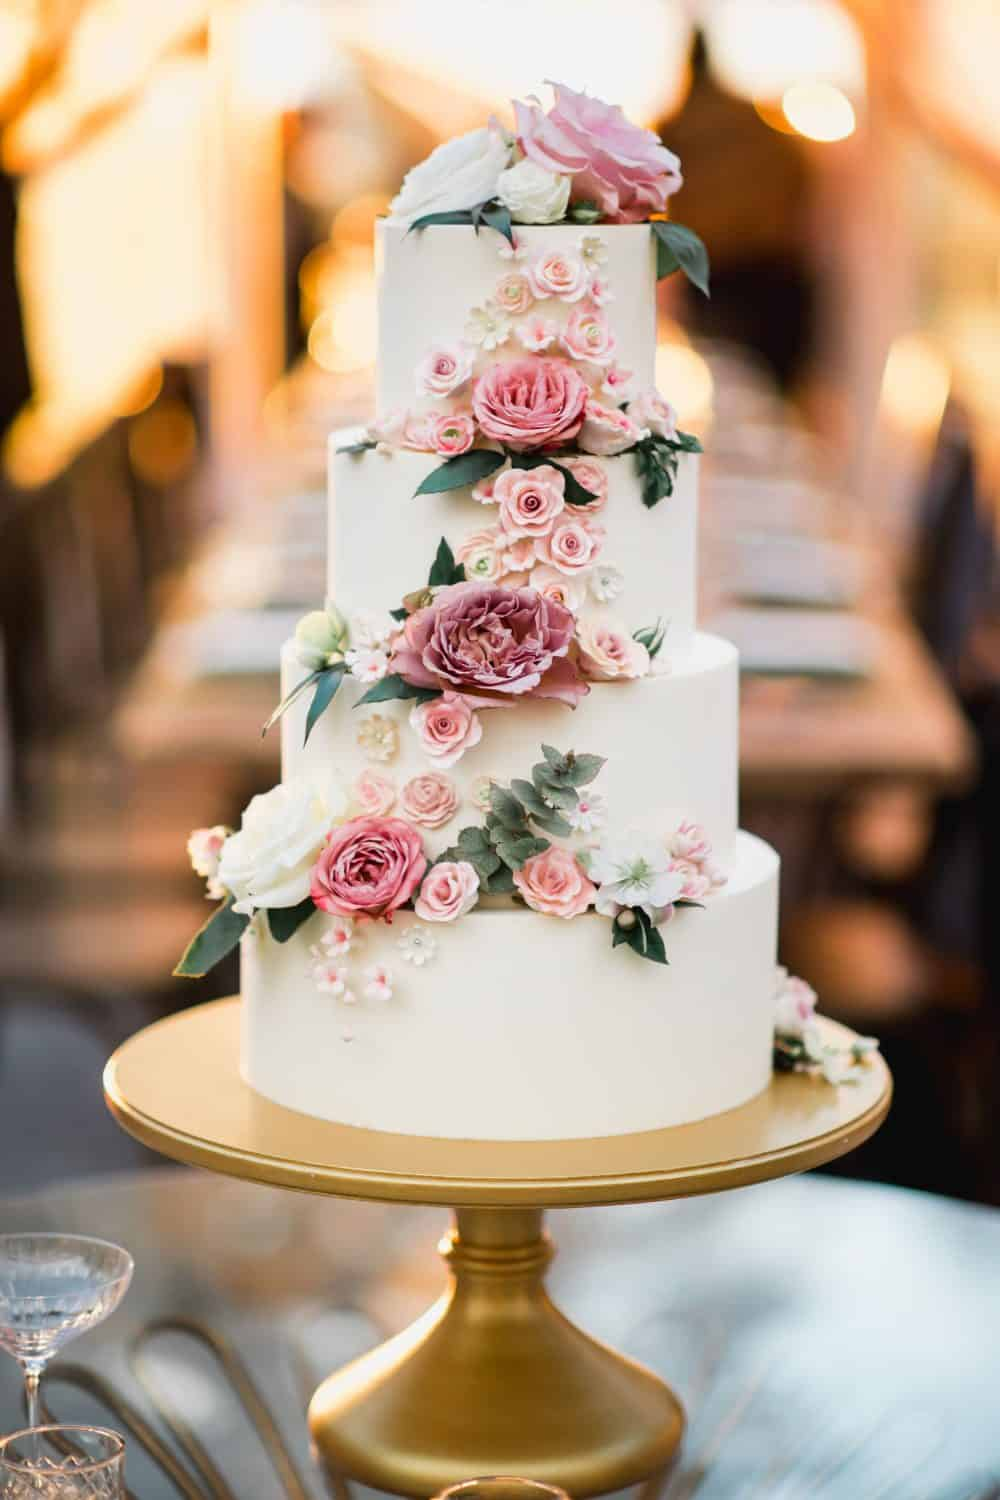 Wedding Cake Wednesday – Give Me Some Sugar (Flowers)